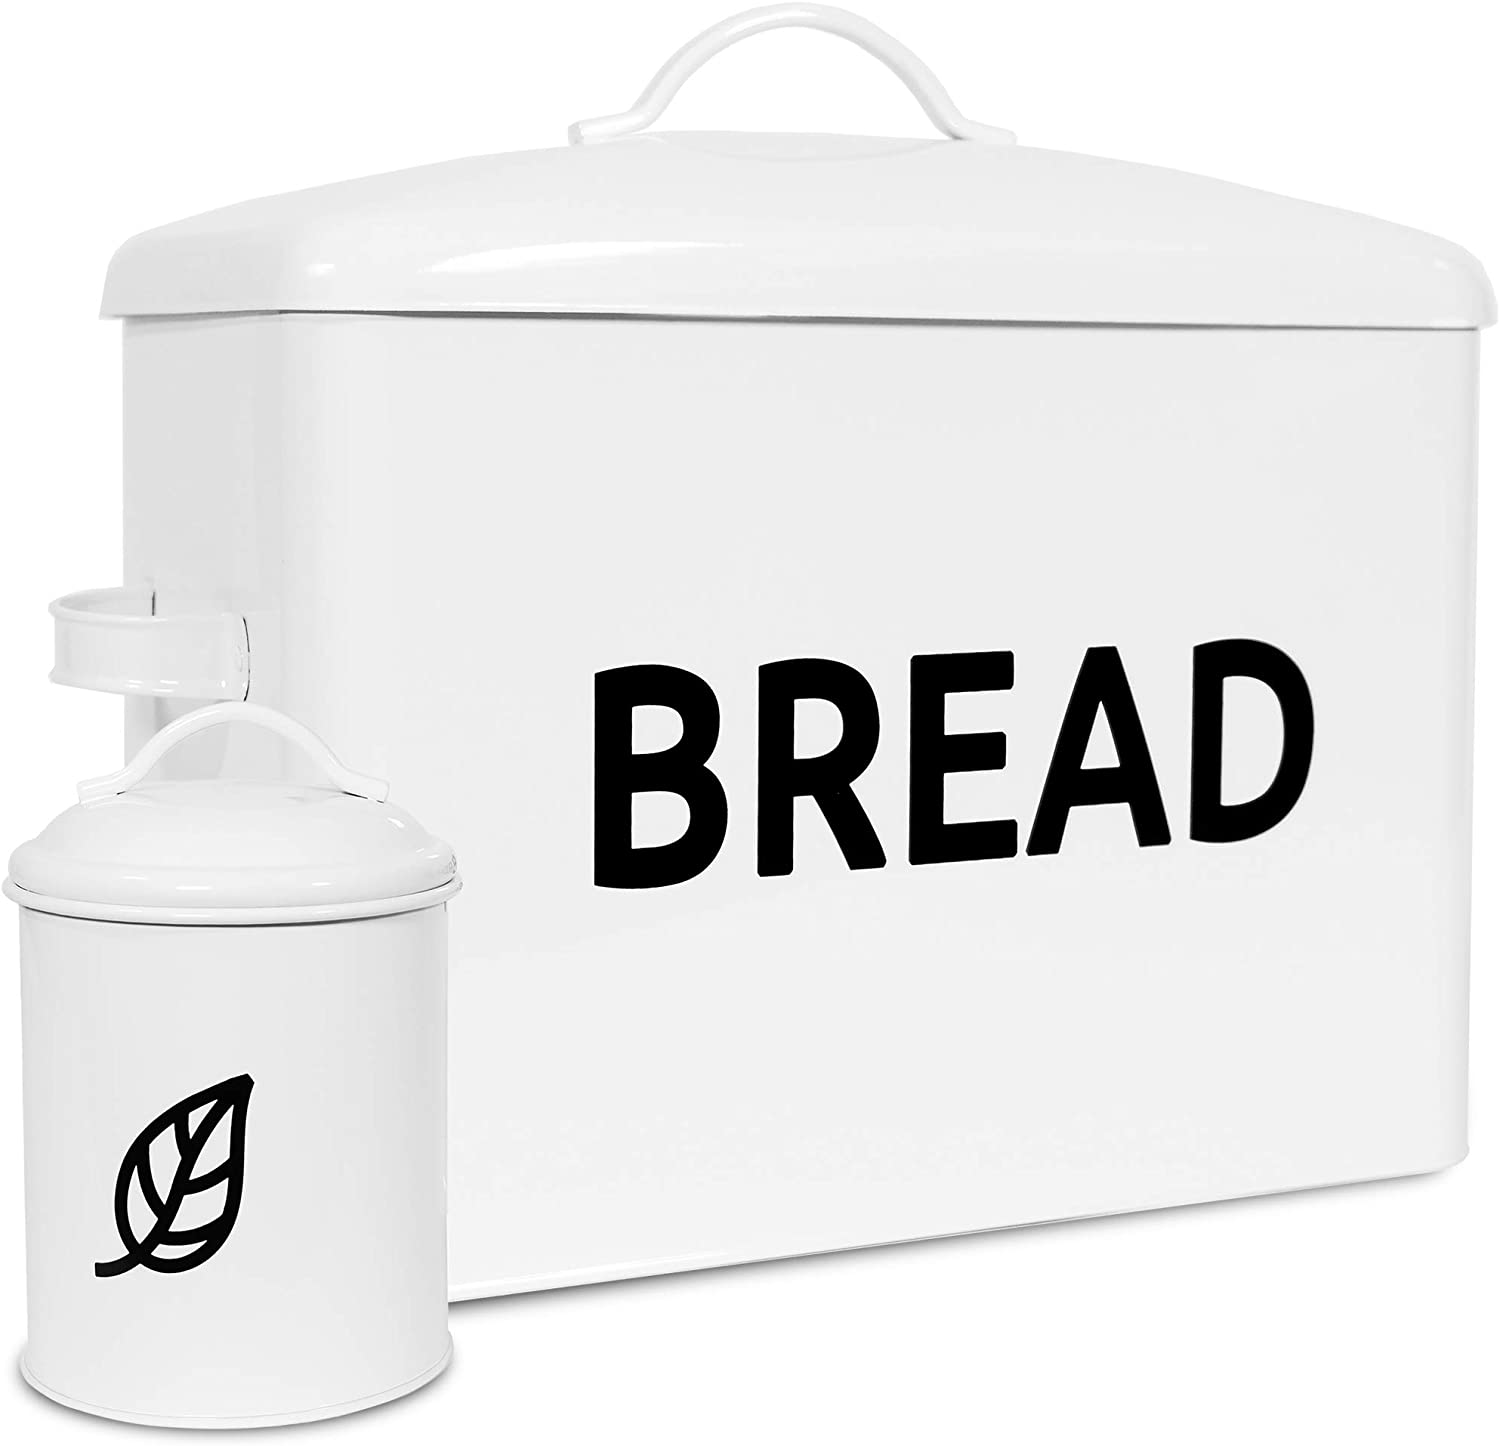 Extra Large Bread Box for kitchen Countertop - Modern Metal Container to Keep Bread Fresh - White Farmhouse Storage Boxes with Airtight Tin for Decor - Stylish Counter Organizer and Space Saver